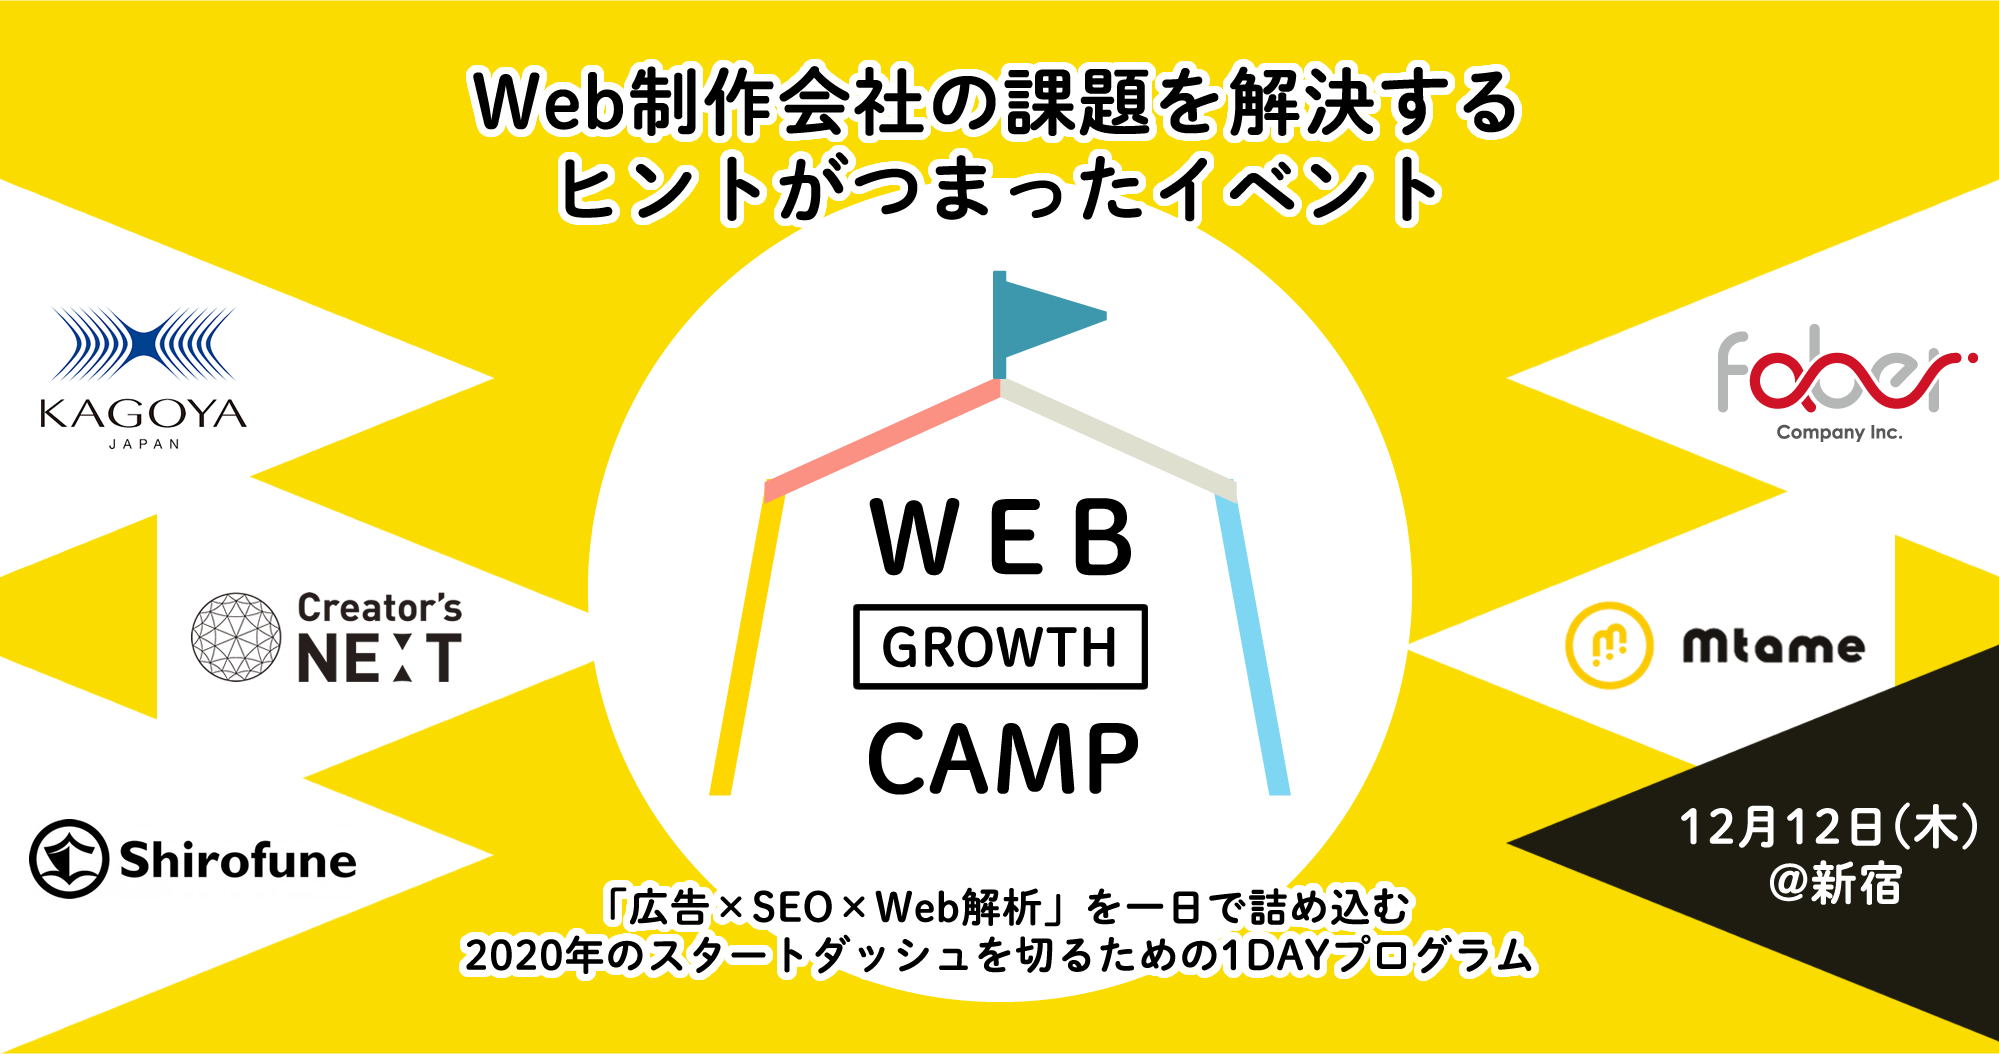 【12月12日(木)】Web制作会社向けイベント「Web Growth Camp」